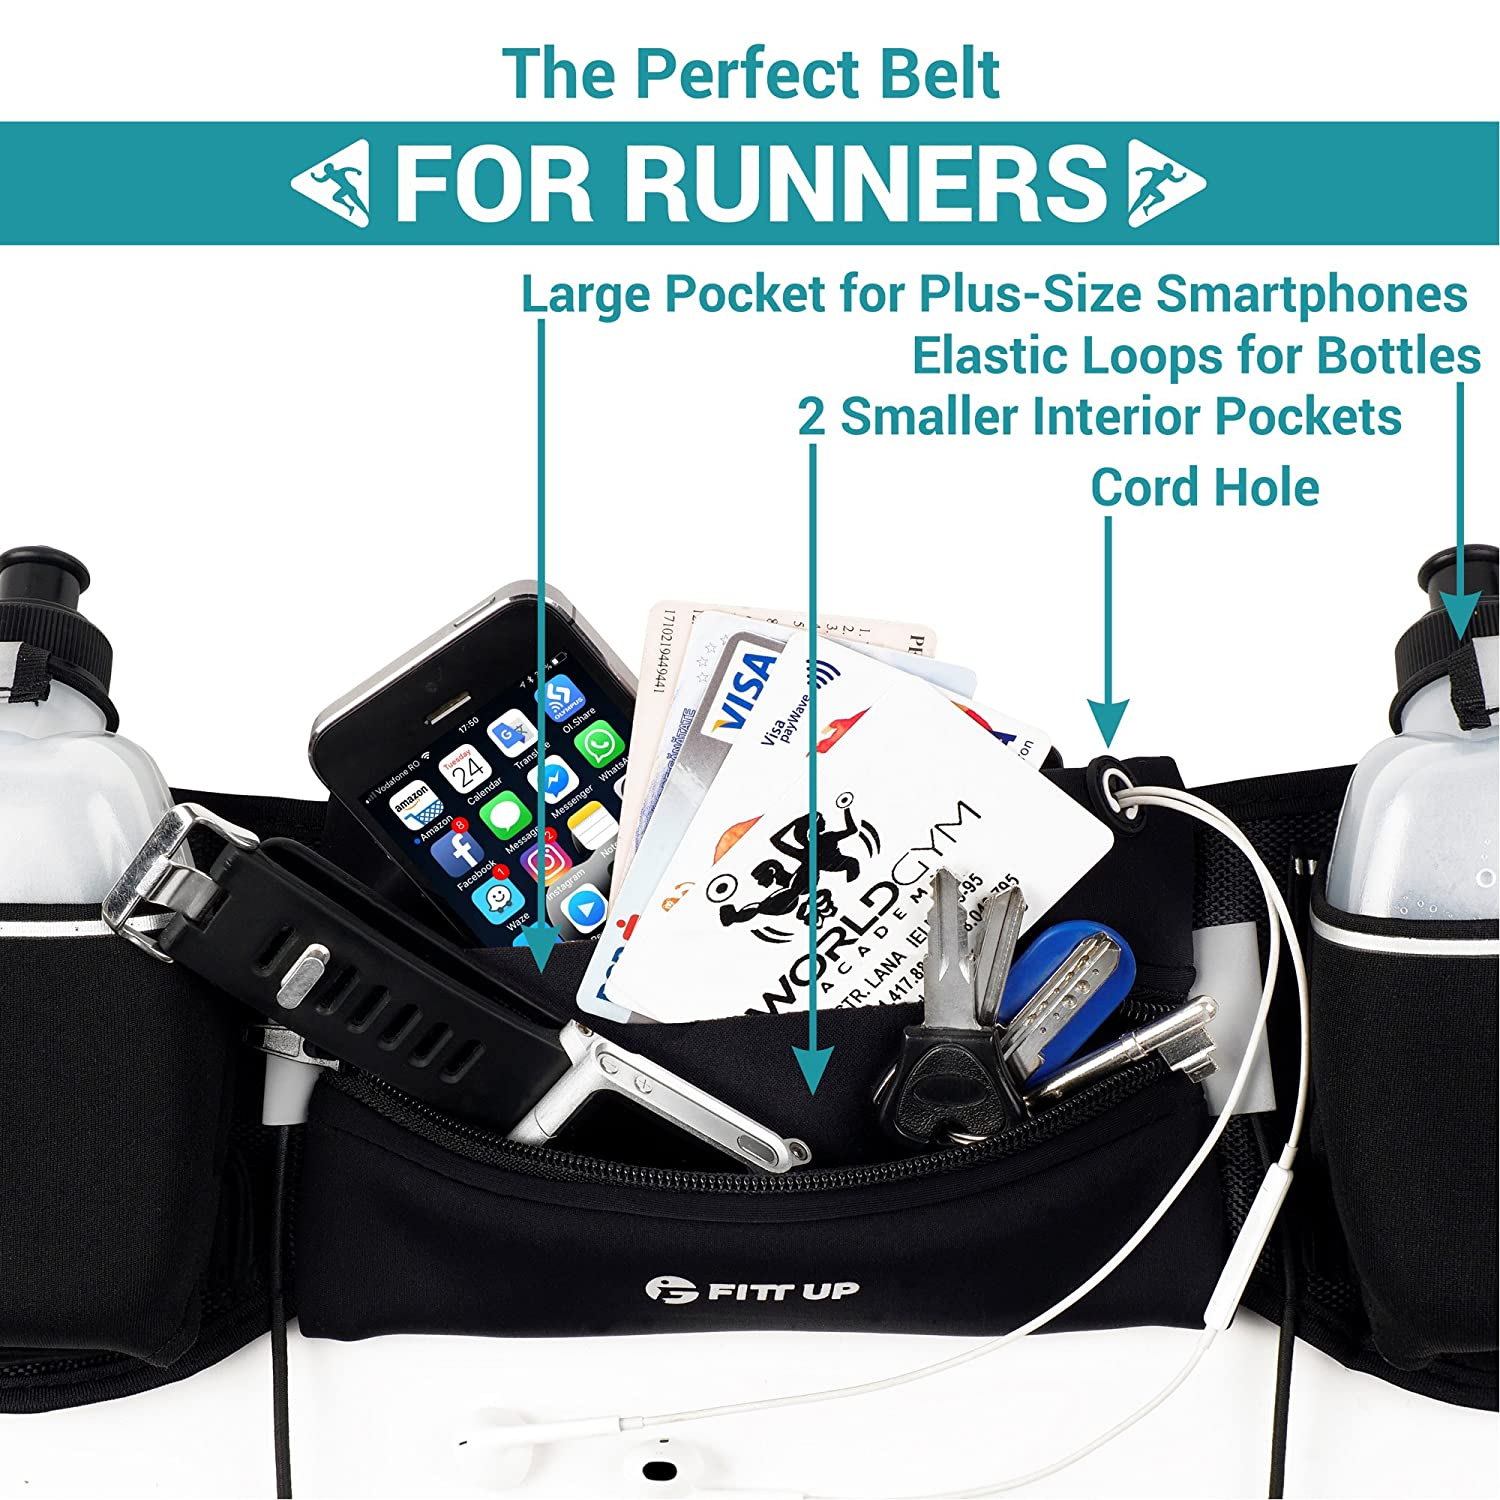 Hydration Running Belt with 2 water Bottles 10 oz BPA Free-Fits all Smartphones-For Running, Race, Marathon, Hiking, Cycling and Climbing-Waterproof Running Belt for Women and Men-Reflective Armband Fitt Up